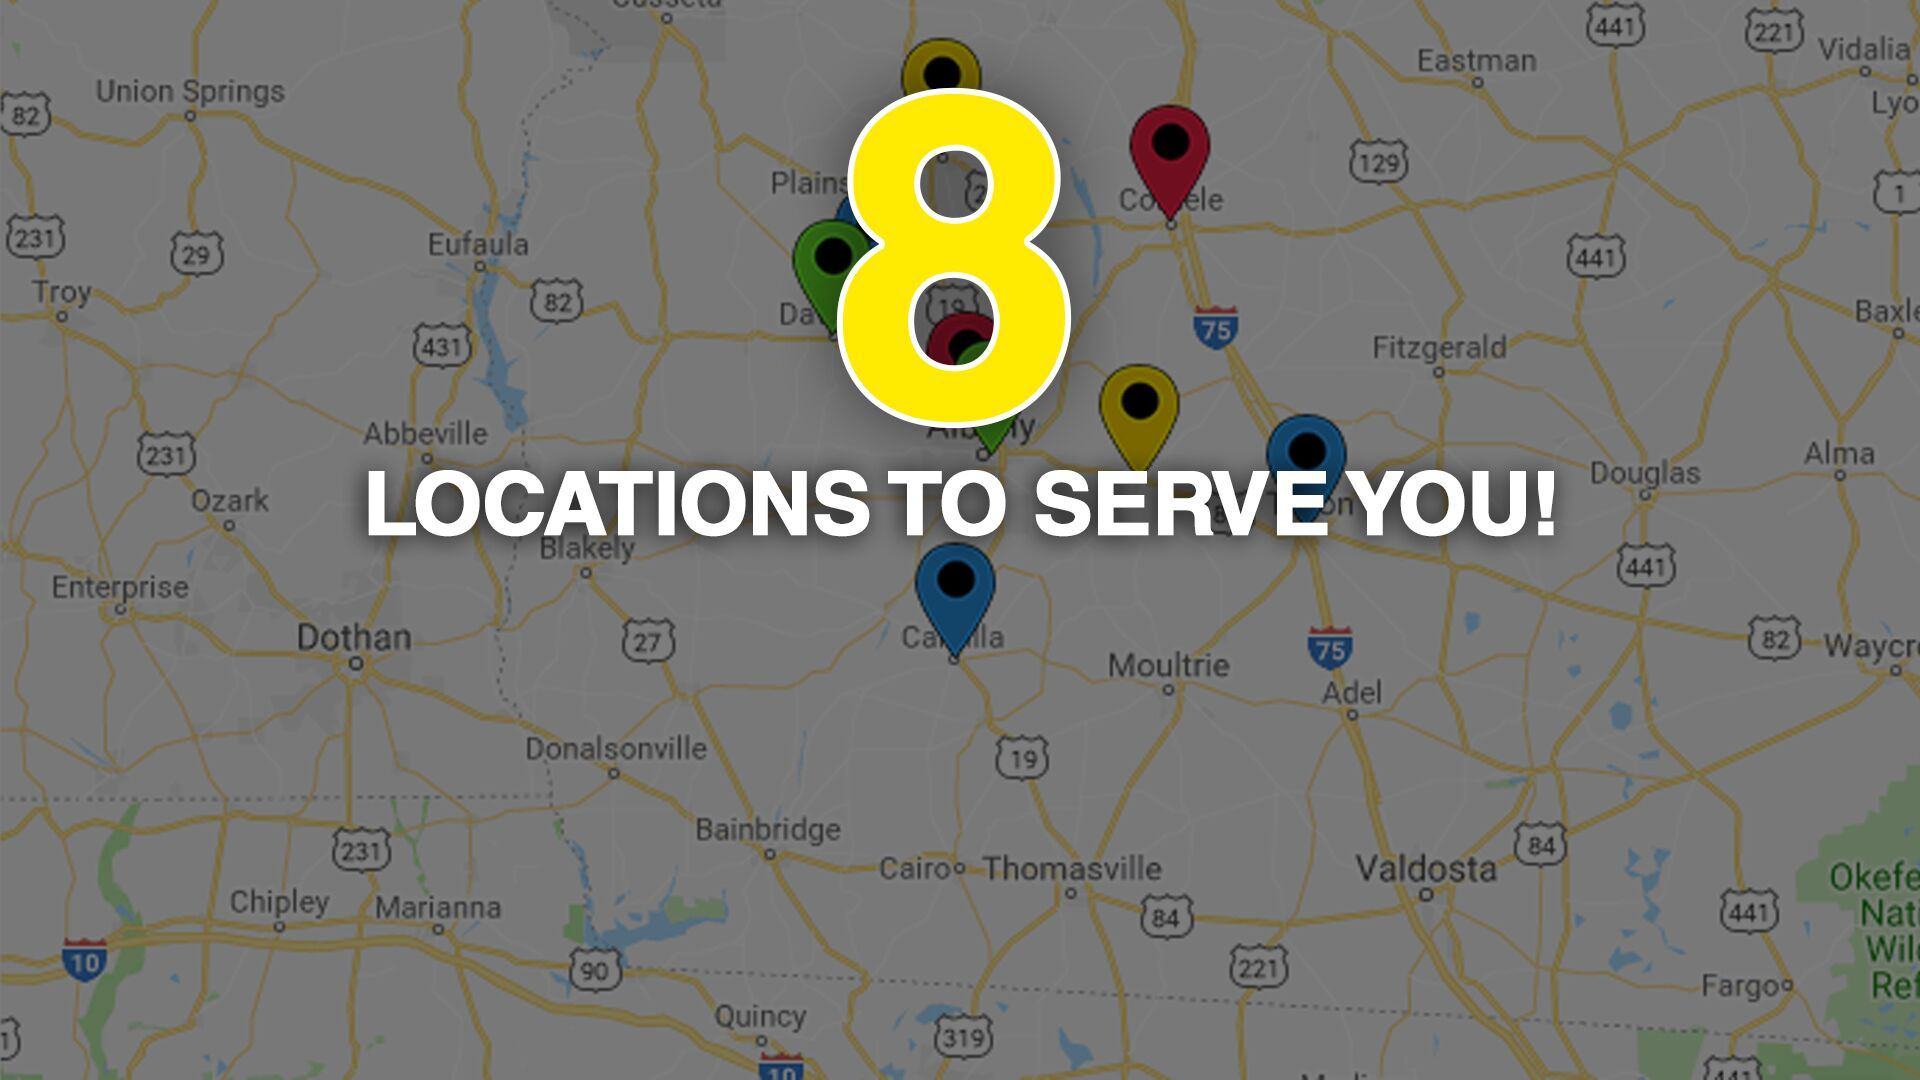 Eight Locations!